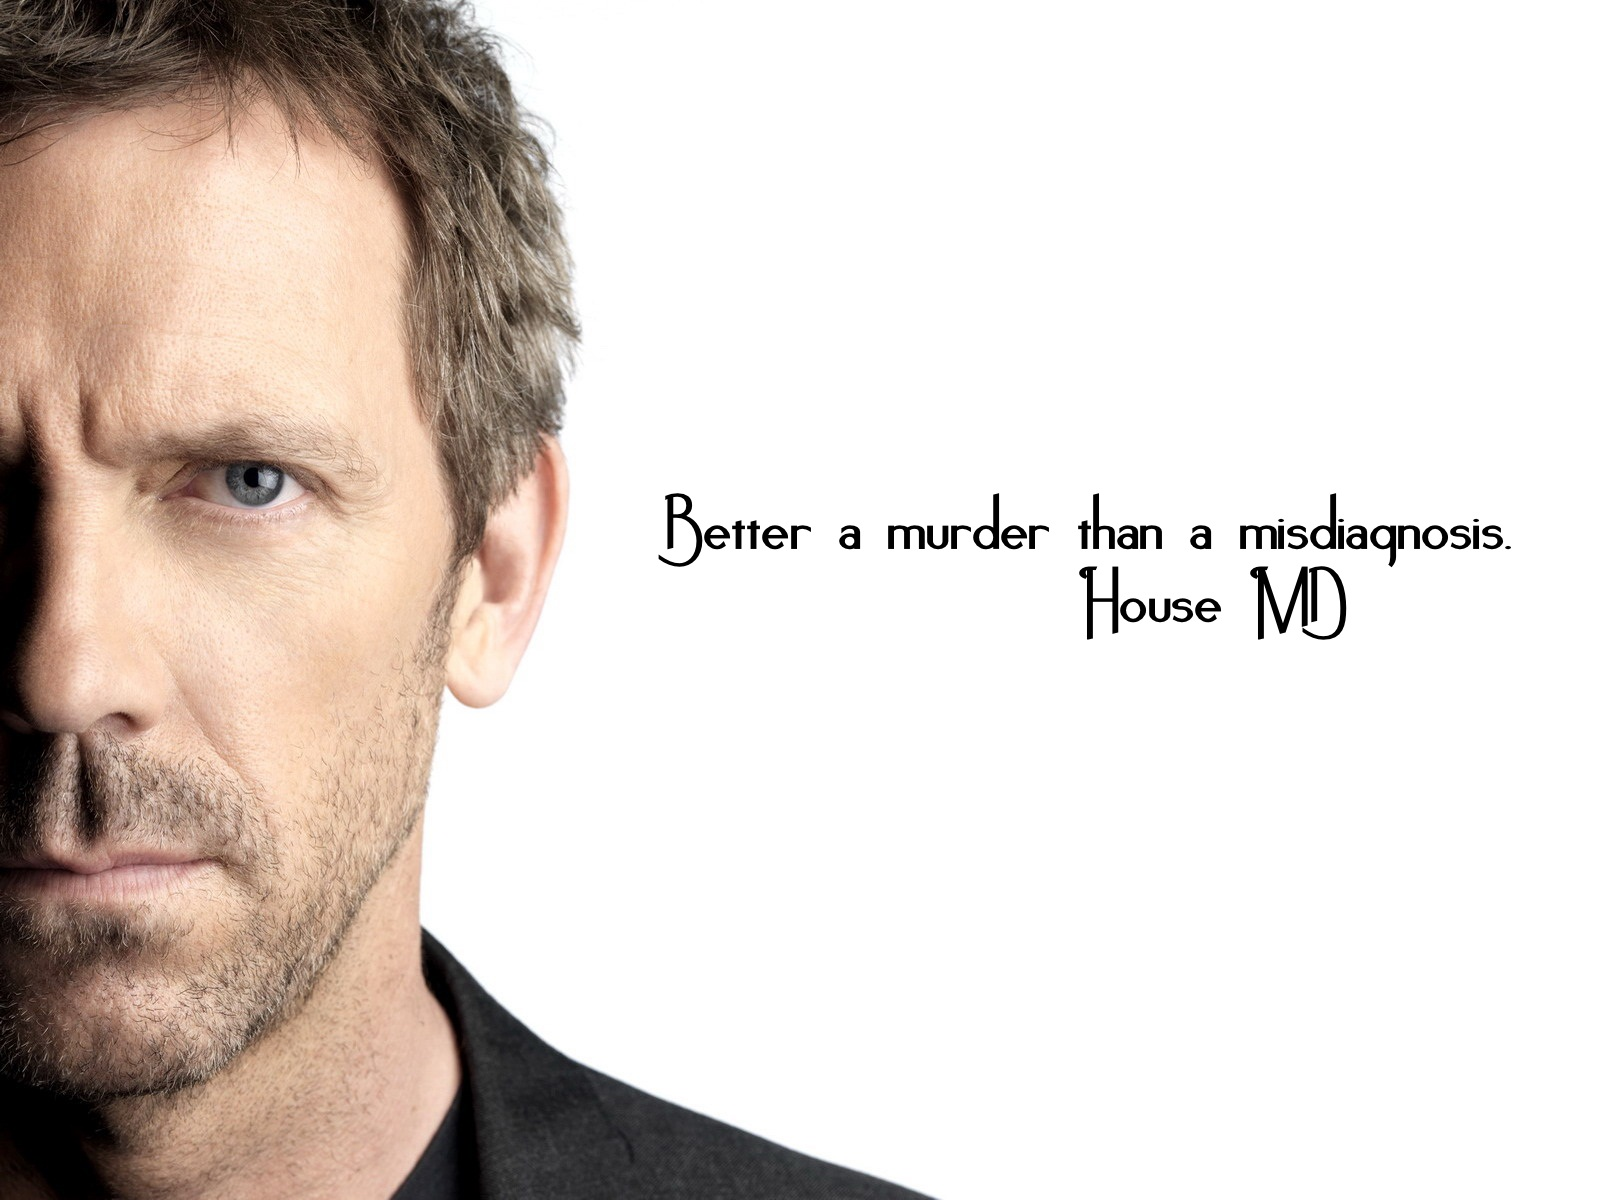 House quote #1